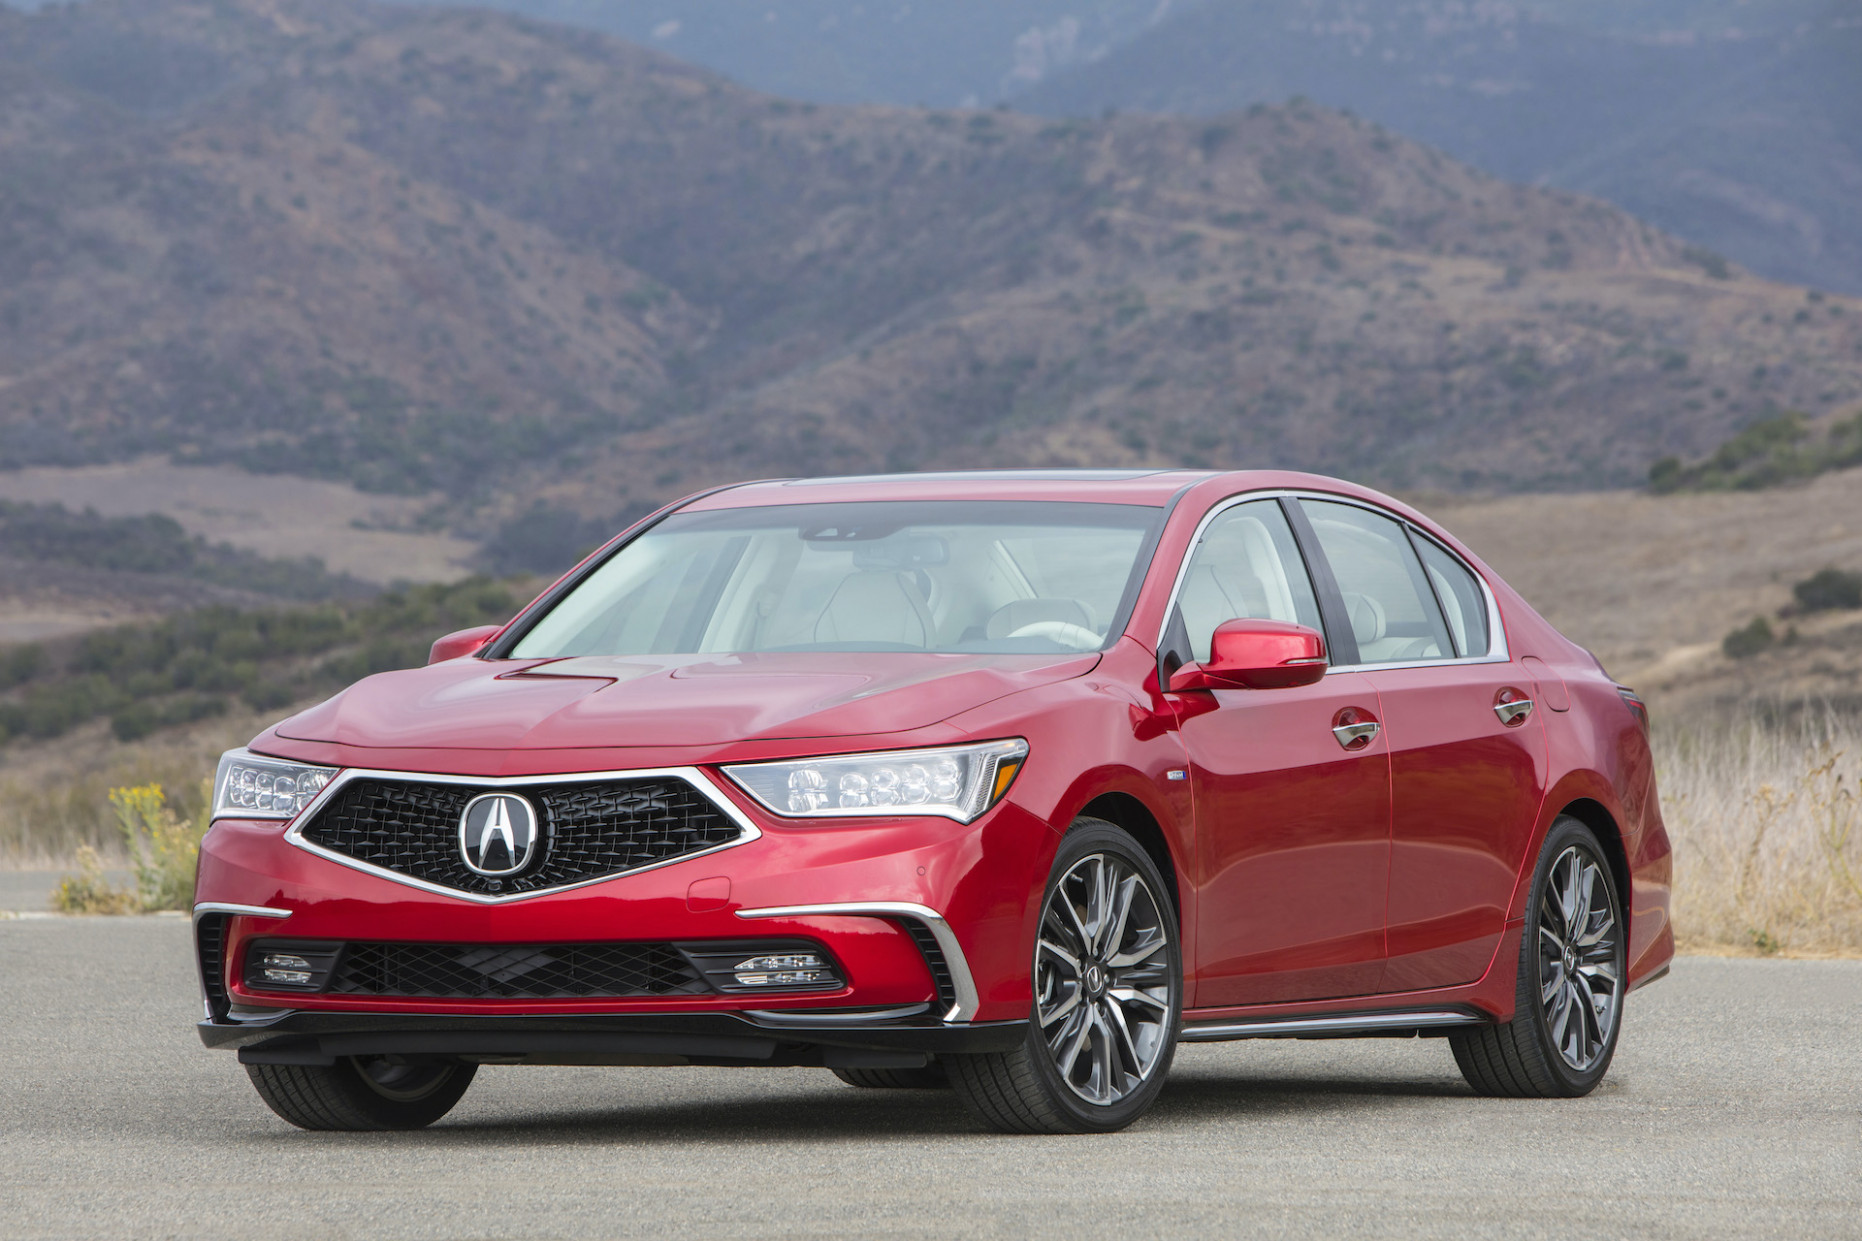 Acura RLX to bow out after 7